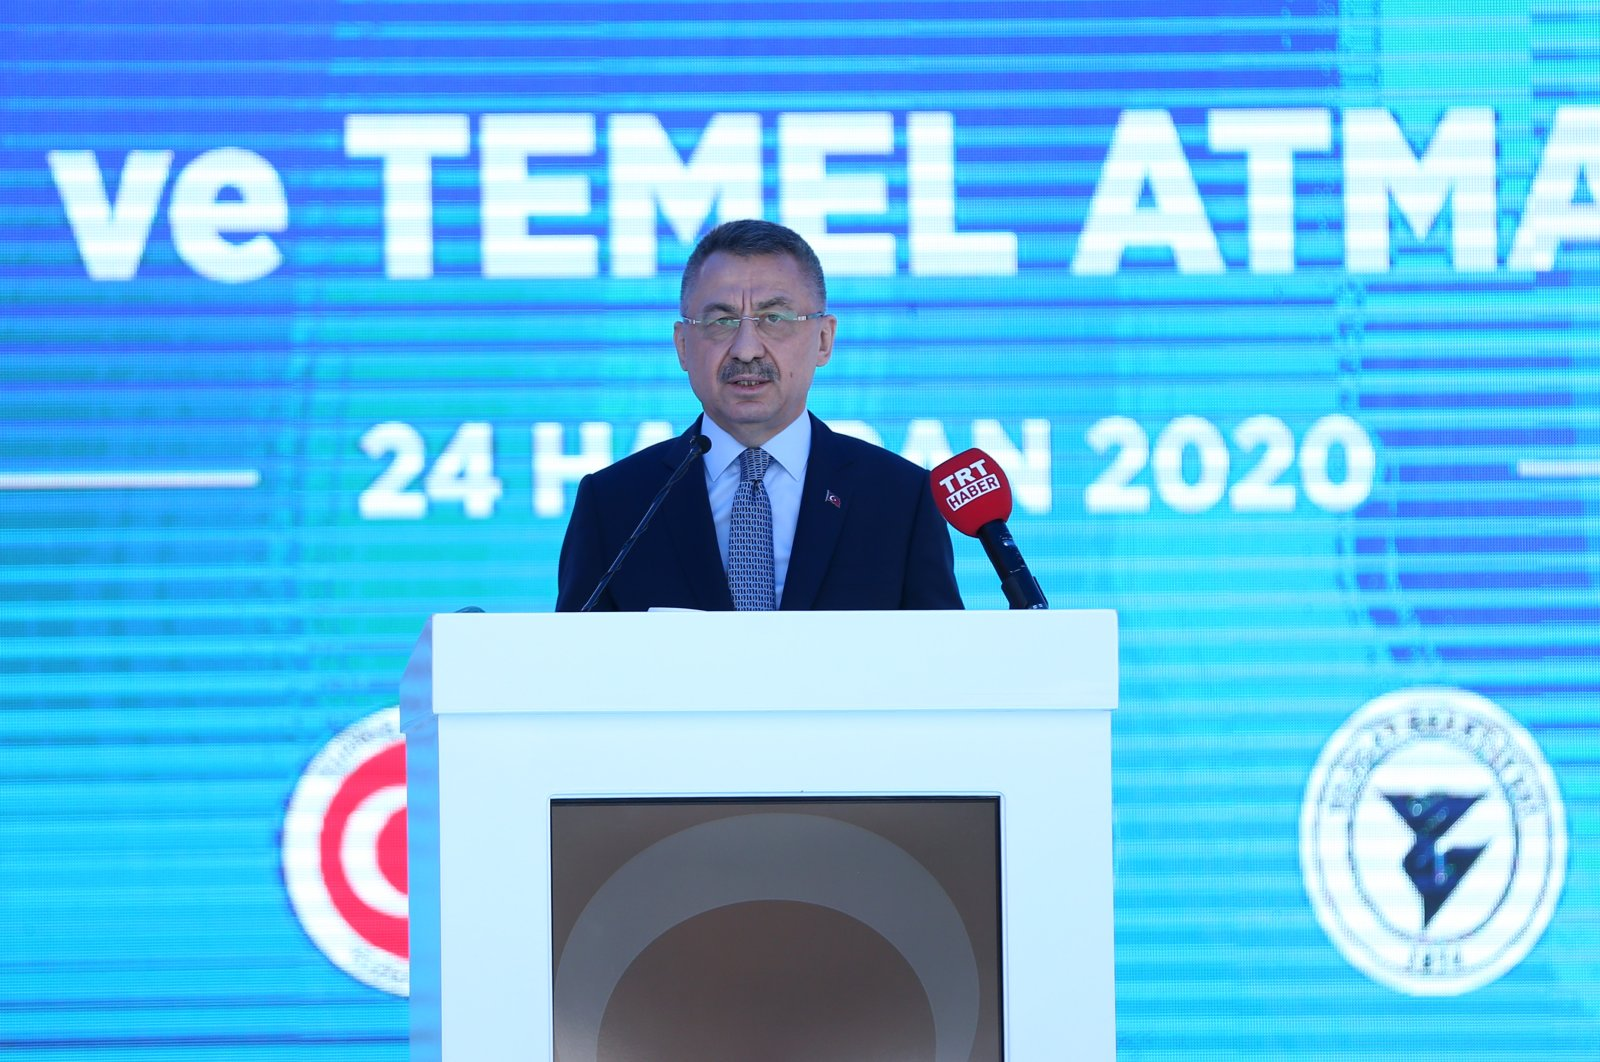 Vice President Fuat Oktay speaks during an inauguration ceremony in central Turkey's Yozgat, June 24, 2020. (AA Photo)